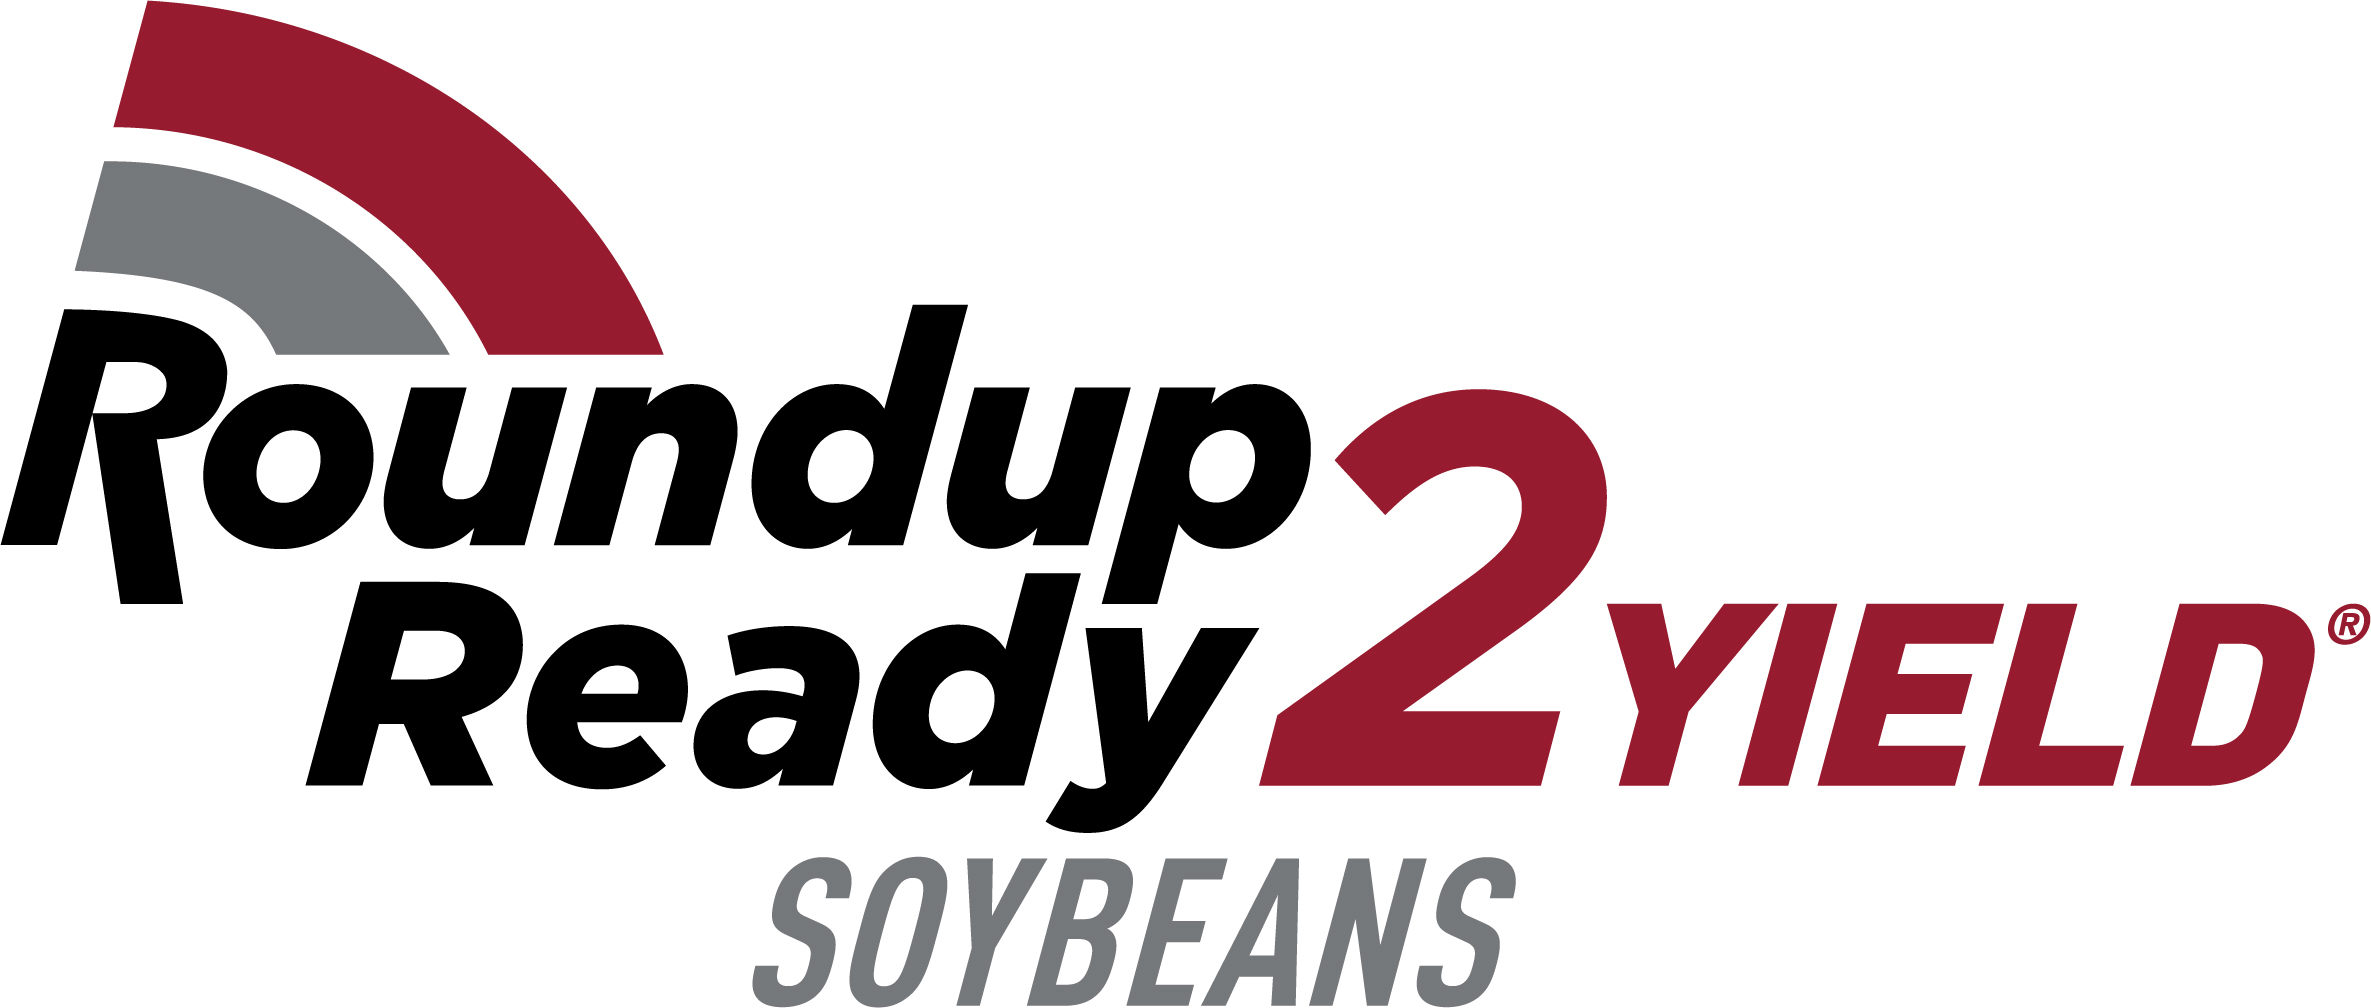 Roundup Ready 2 Yield Soybeans - Colour - EN.jpg